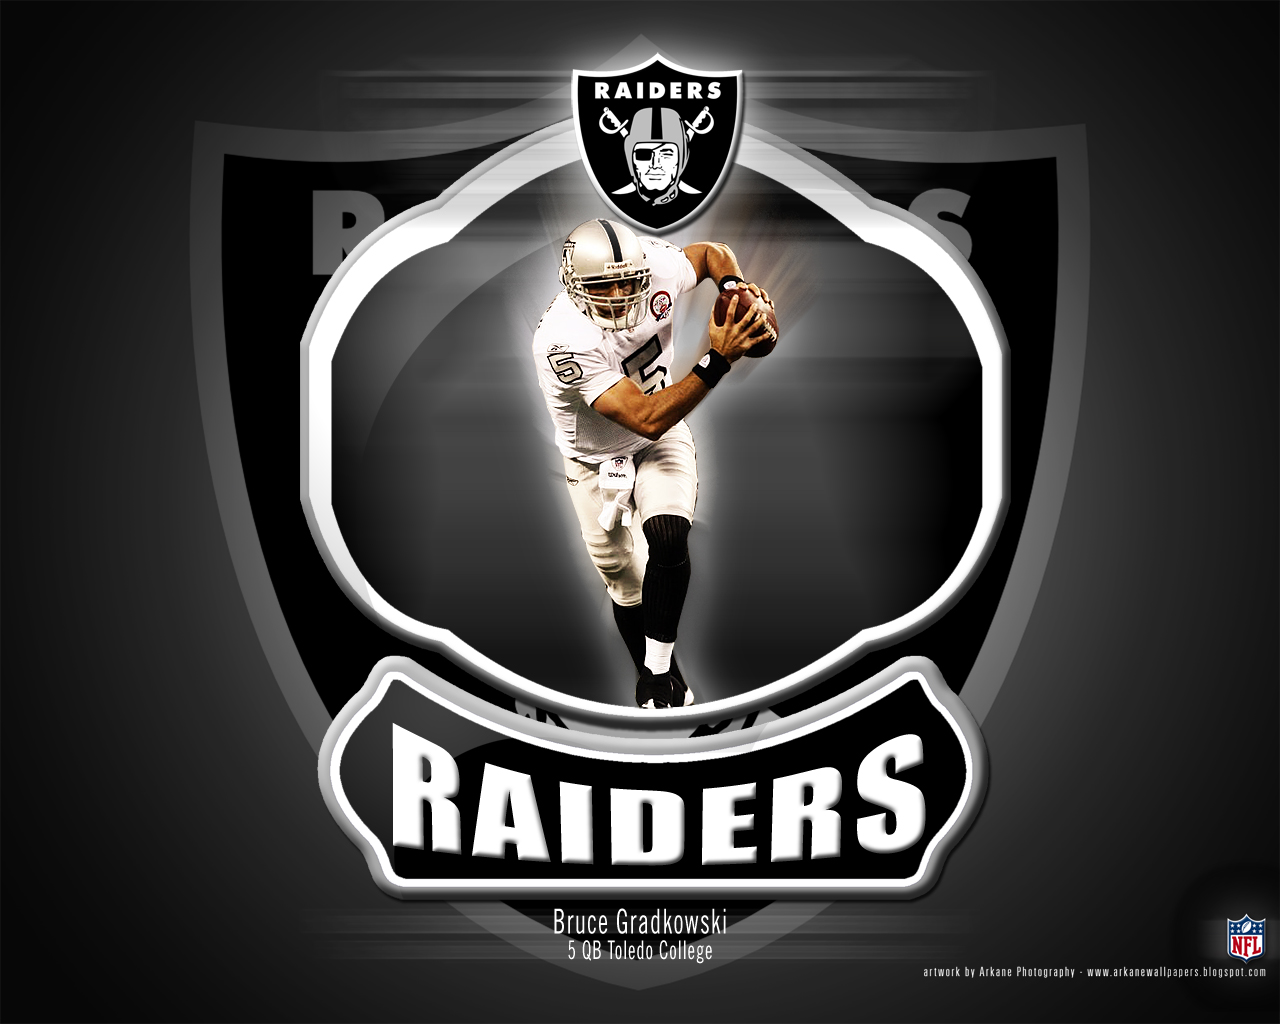 Arkane Nfl Wallpapers Bruce Gradkowski Oakland Raiders